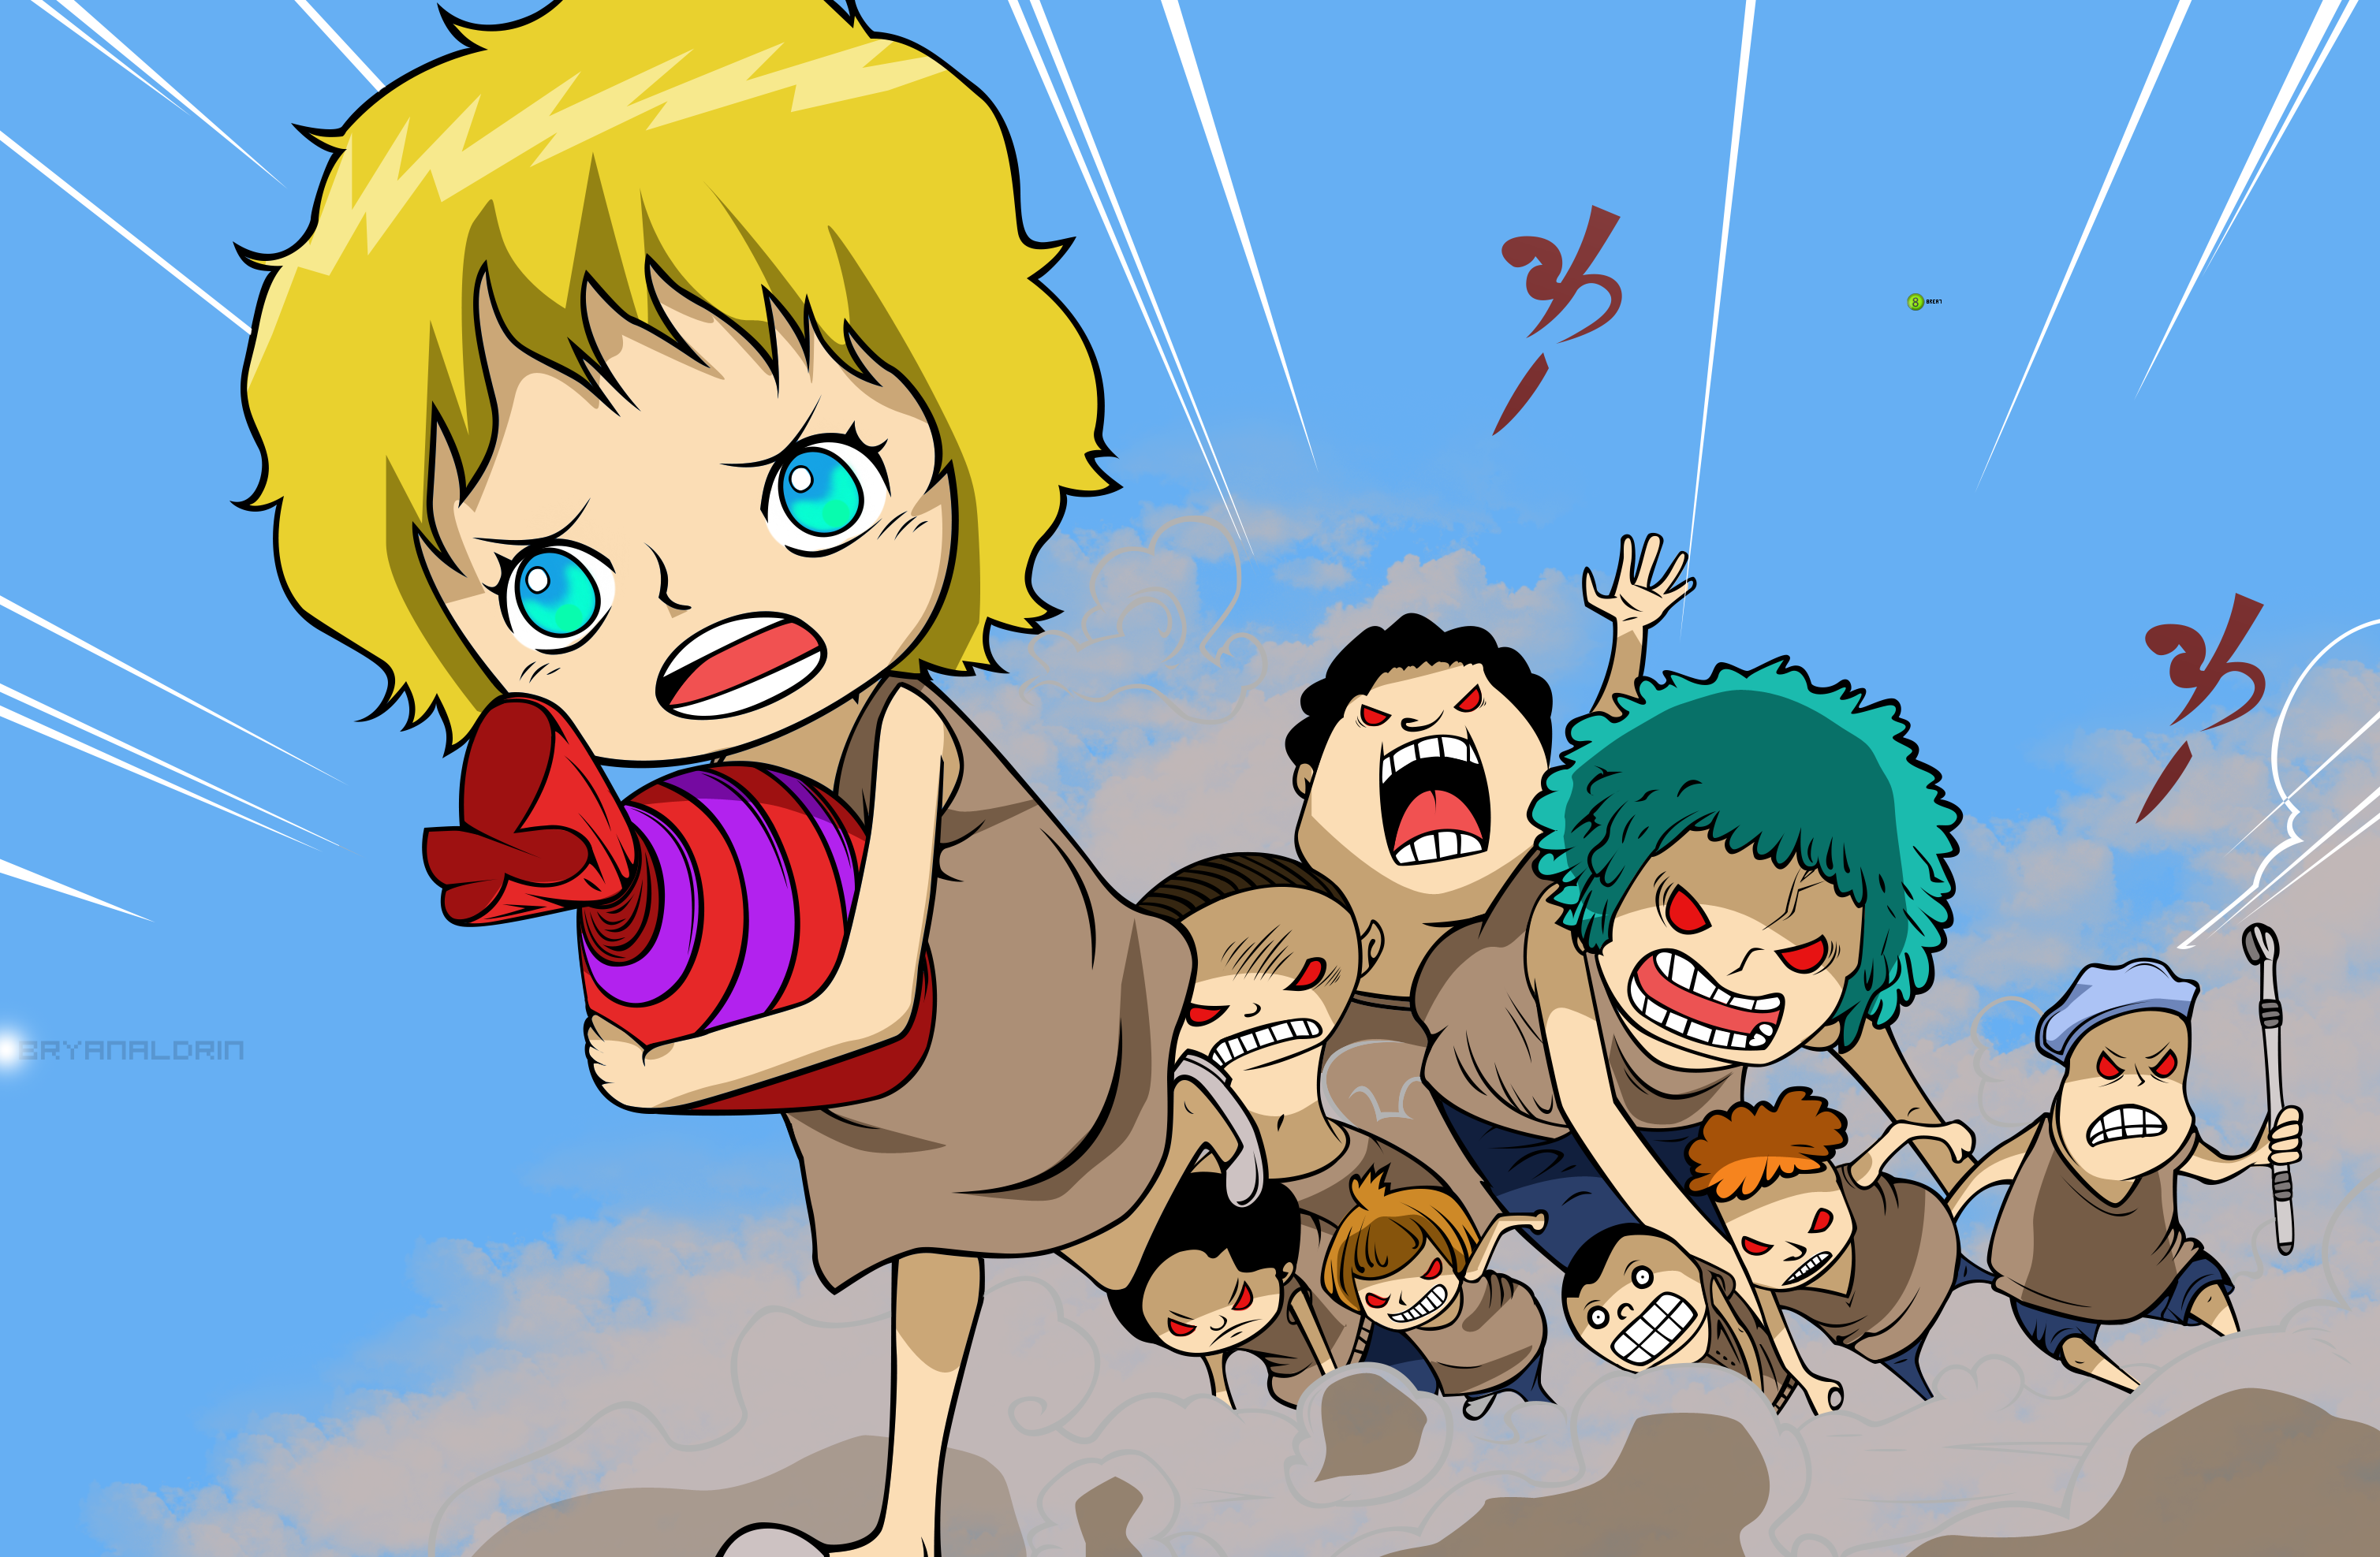 Giant Kids of Punk Hazard by bryanaldrin